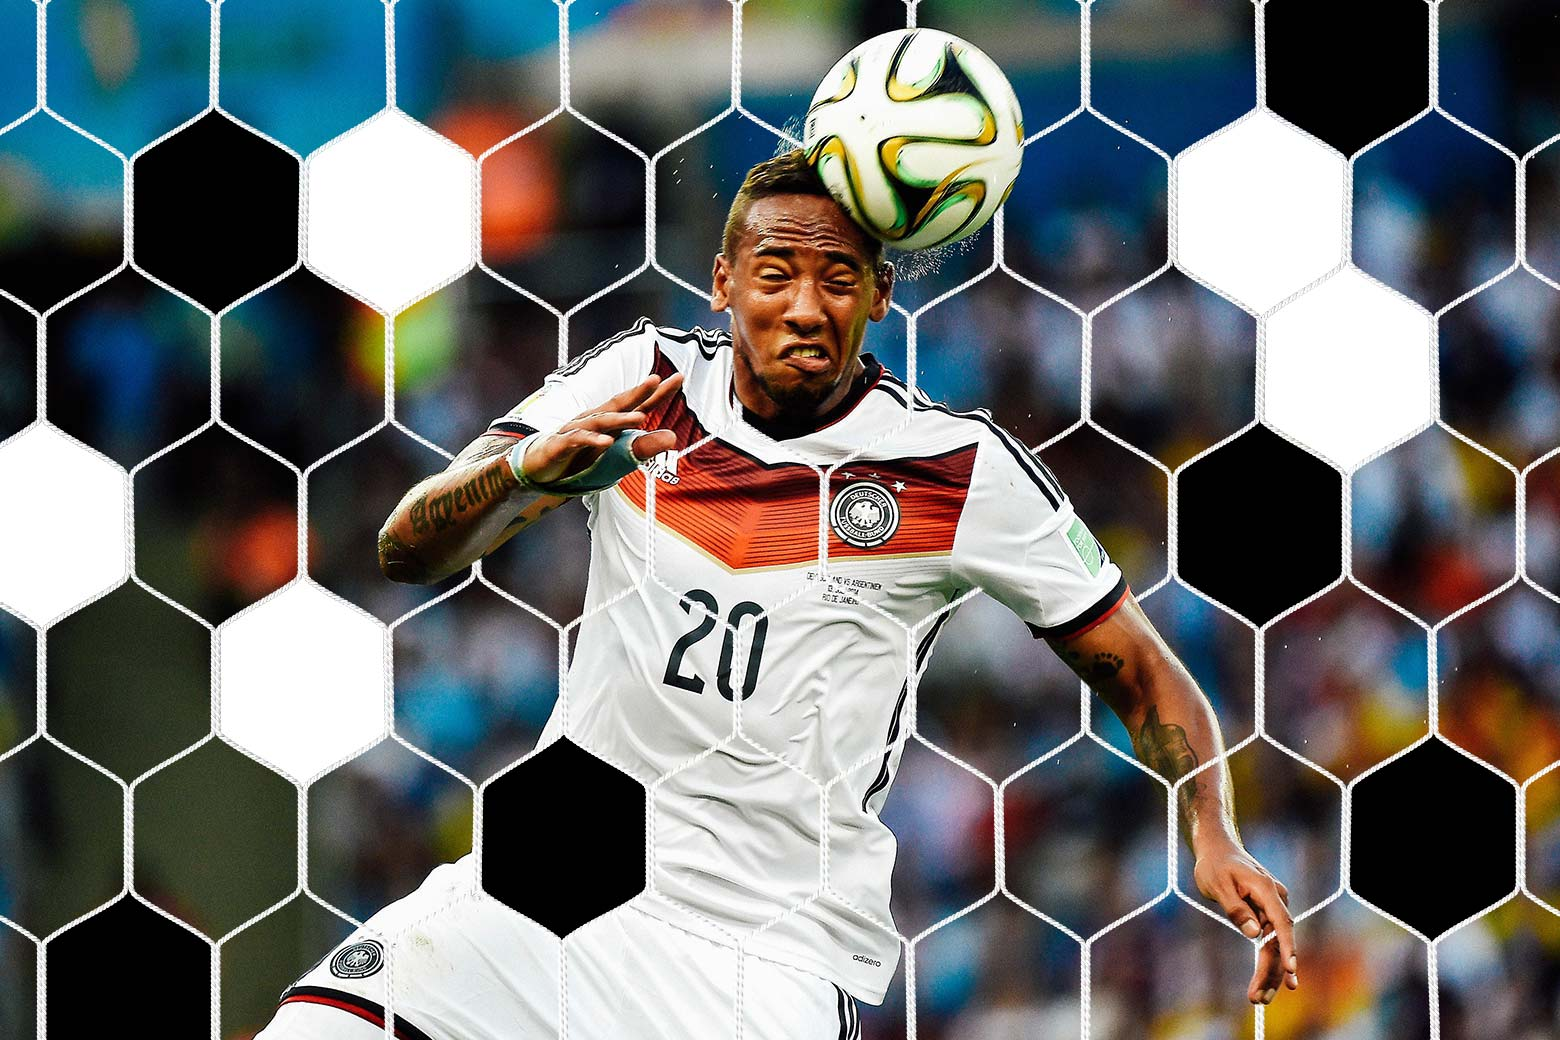 Jerome Boateng grimaces as he heads the ball.